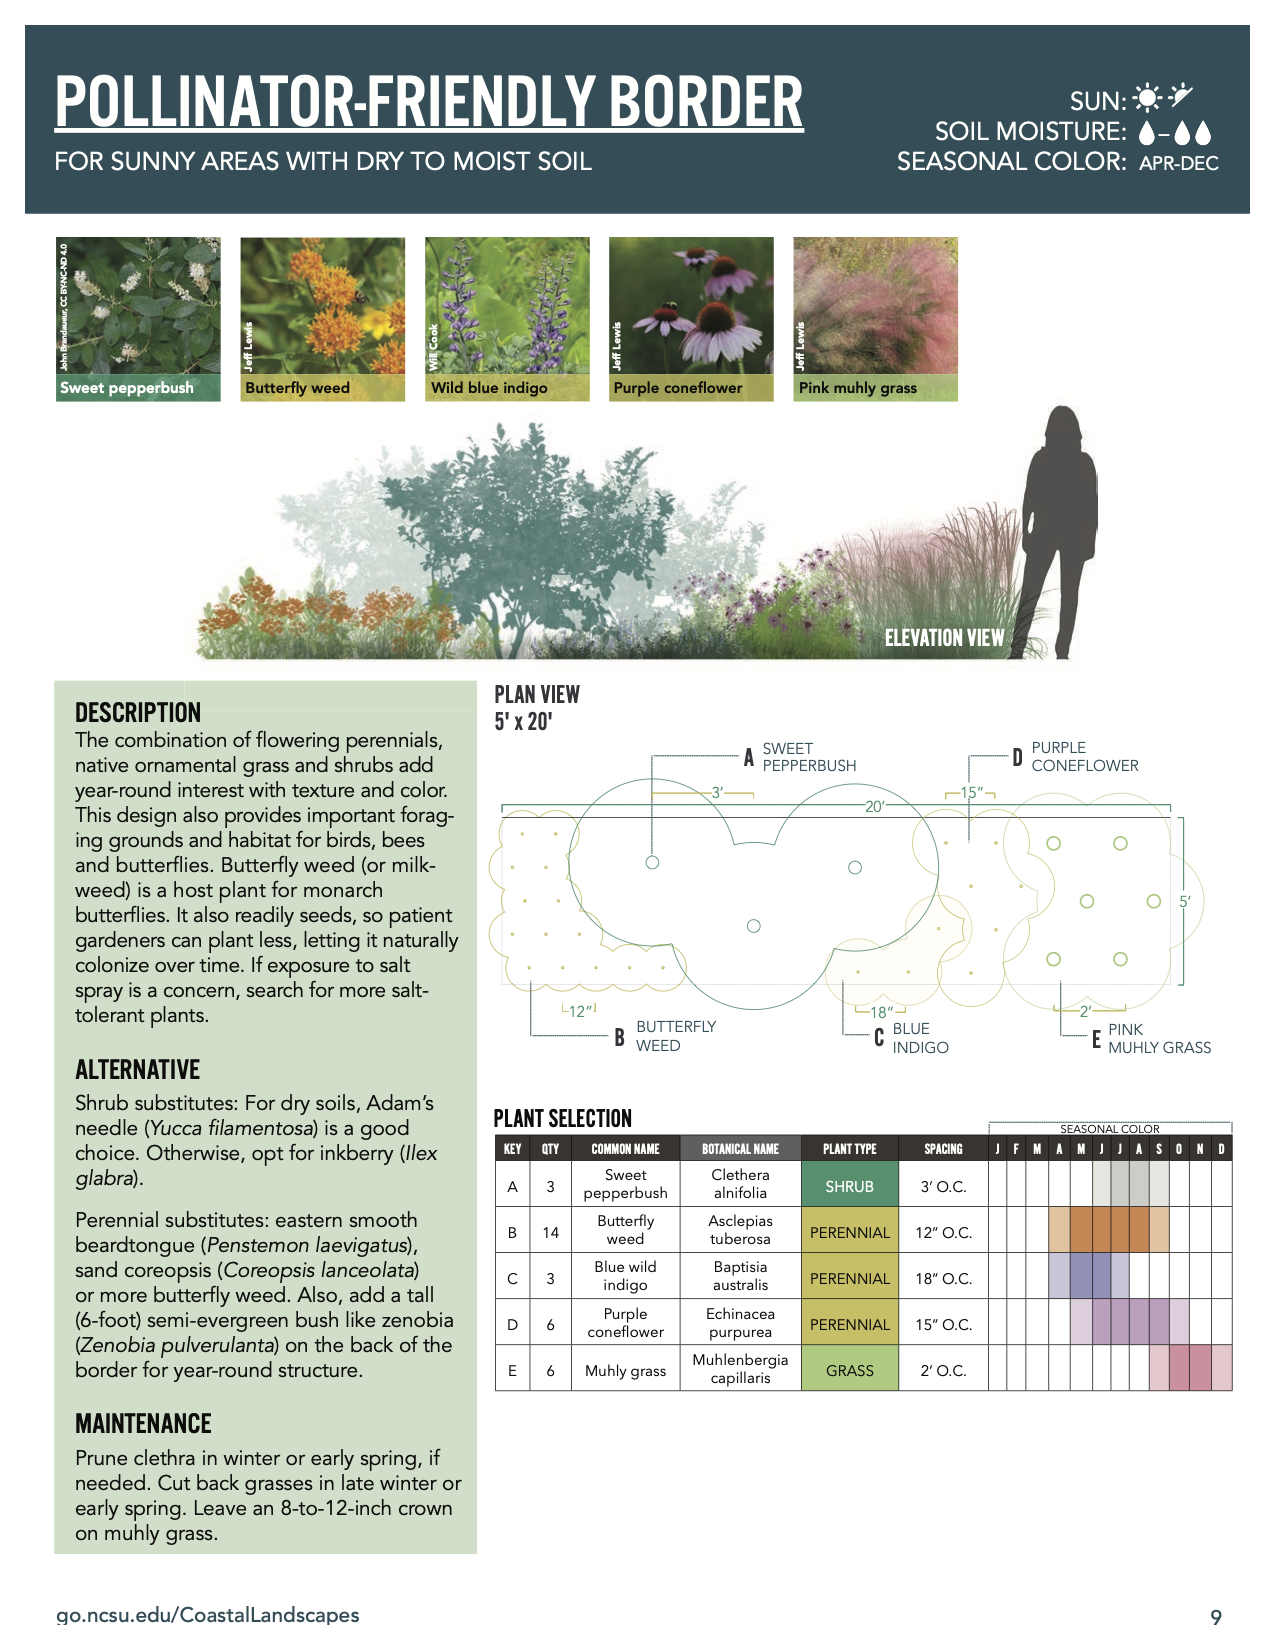 """An image of the """"Pollinator-Friendly Border"""" design"""